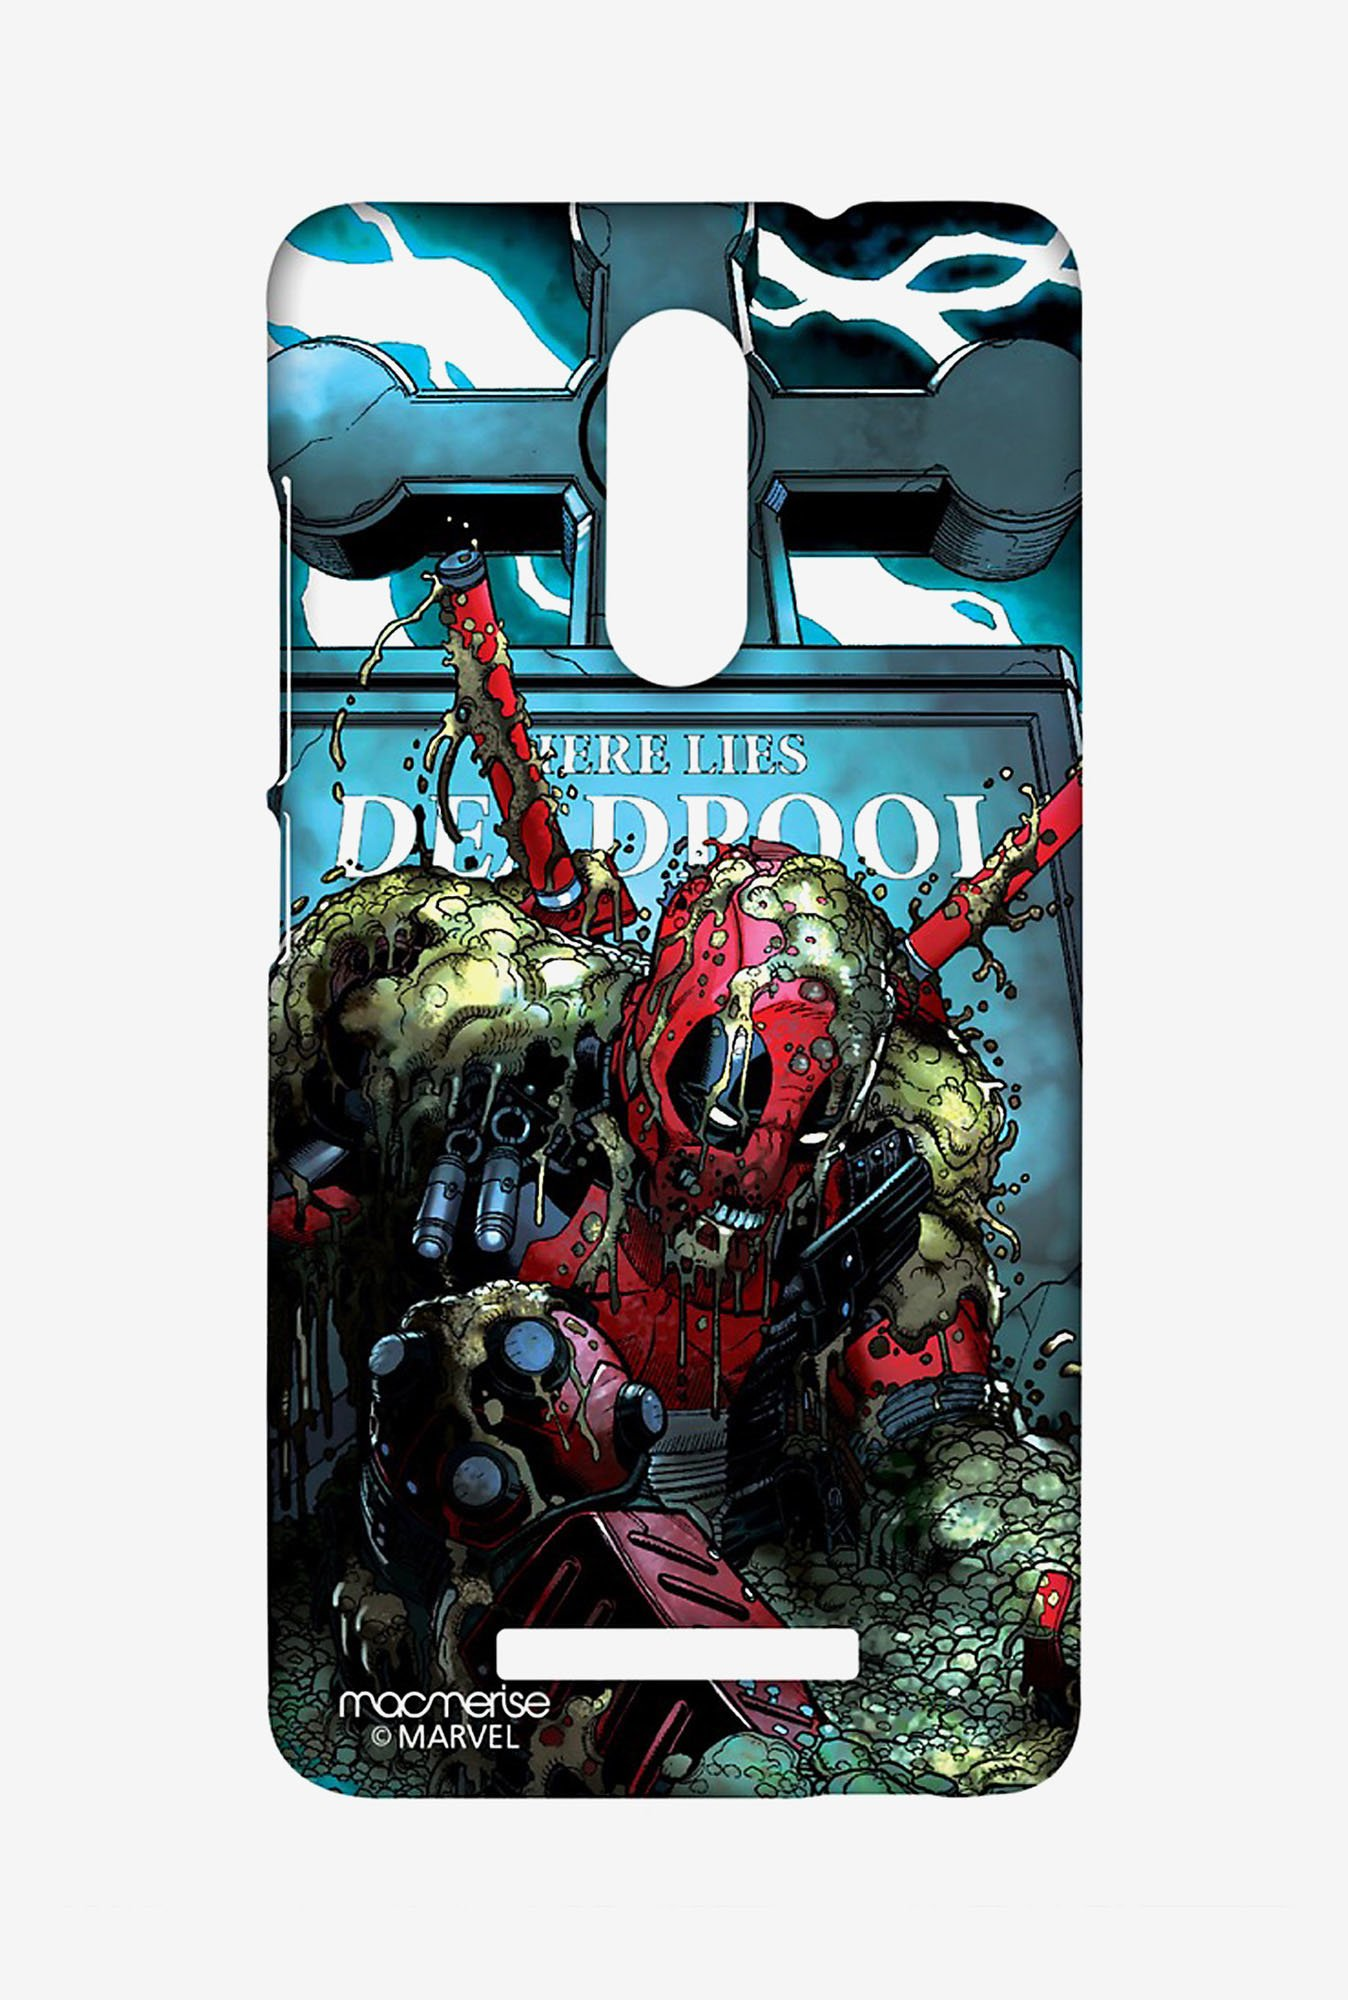 Macmerise XACN3SMM0308 Here lies Deadpool Sublime Case for Xiaomi Redmi Note 3